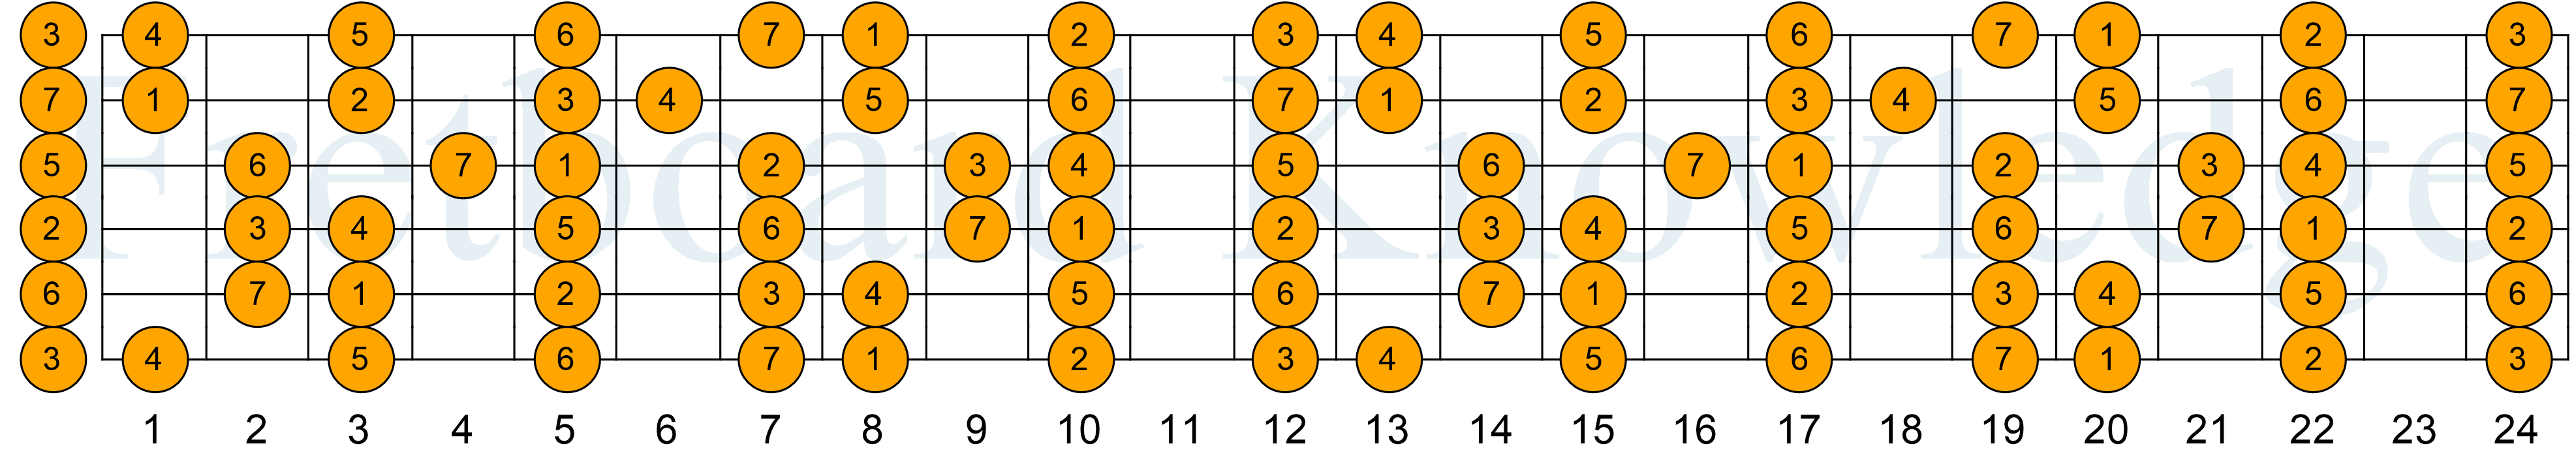 https://fretboardknowledge.com/guitar/wp-content/uploads/sites/5/2018/03/Major_Scale_-_Key_of_C_-_Tone_Functions.png